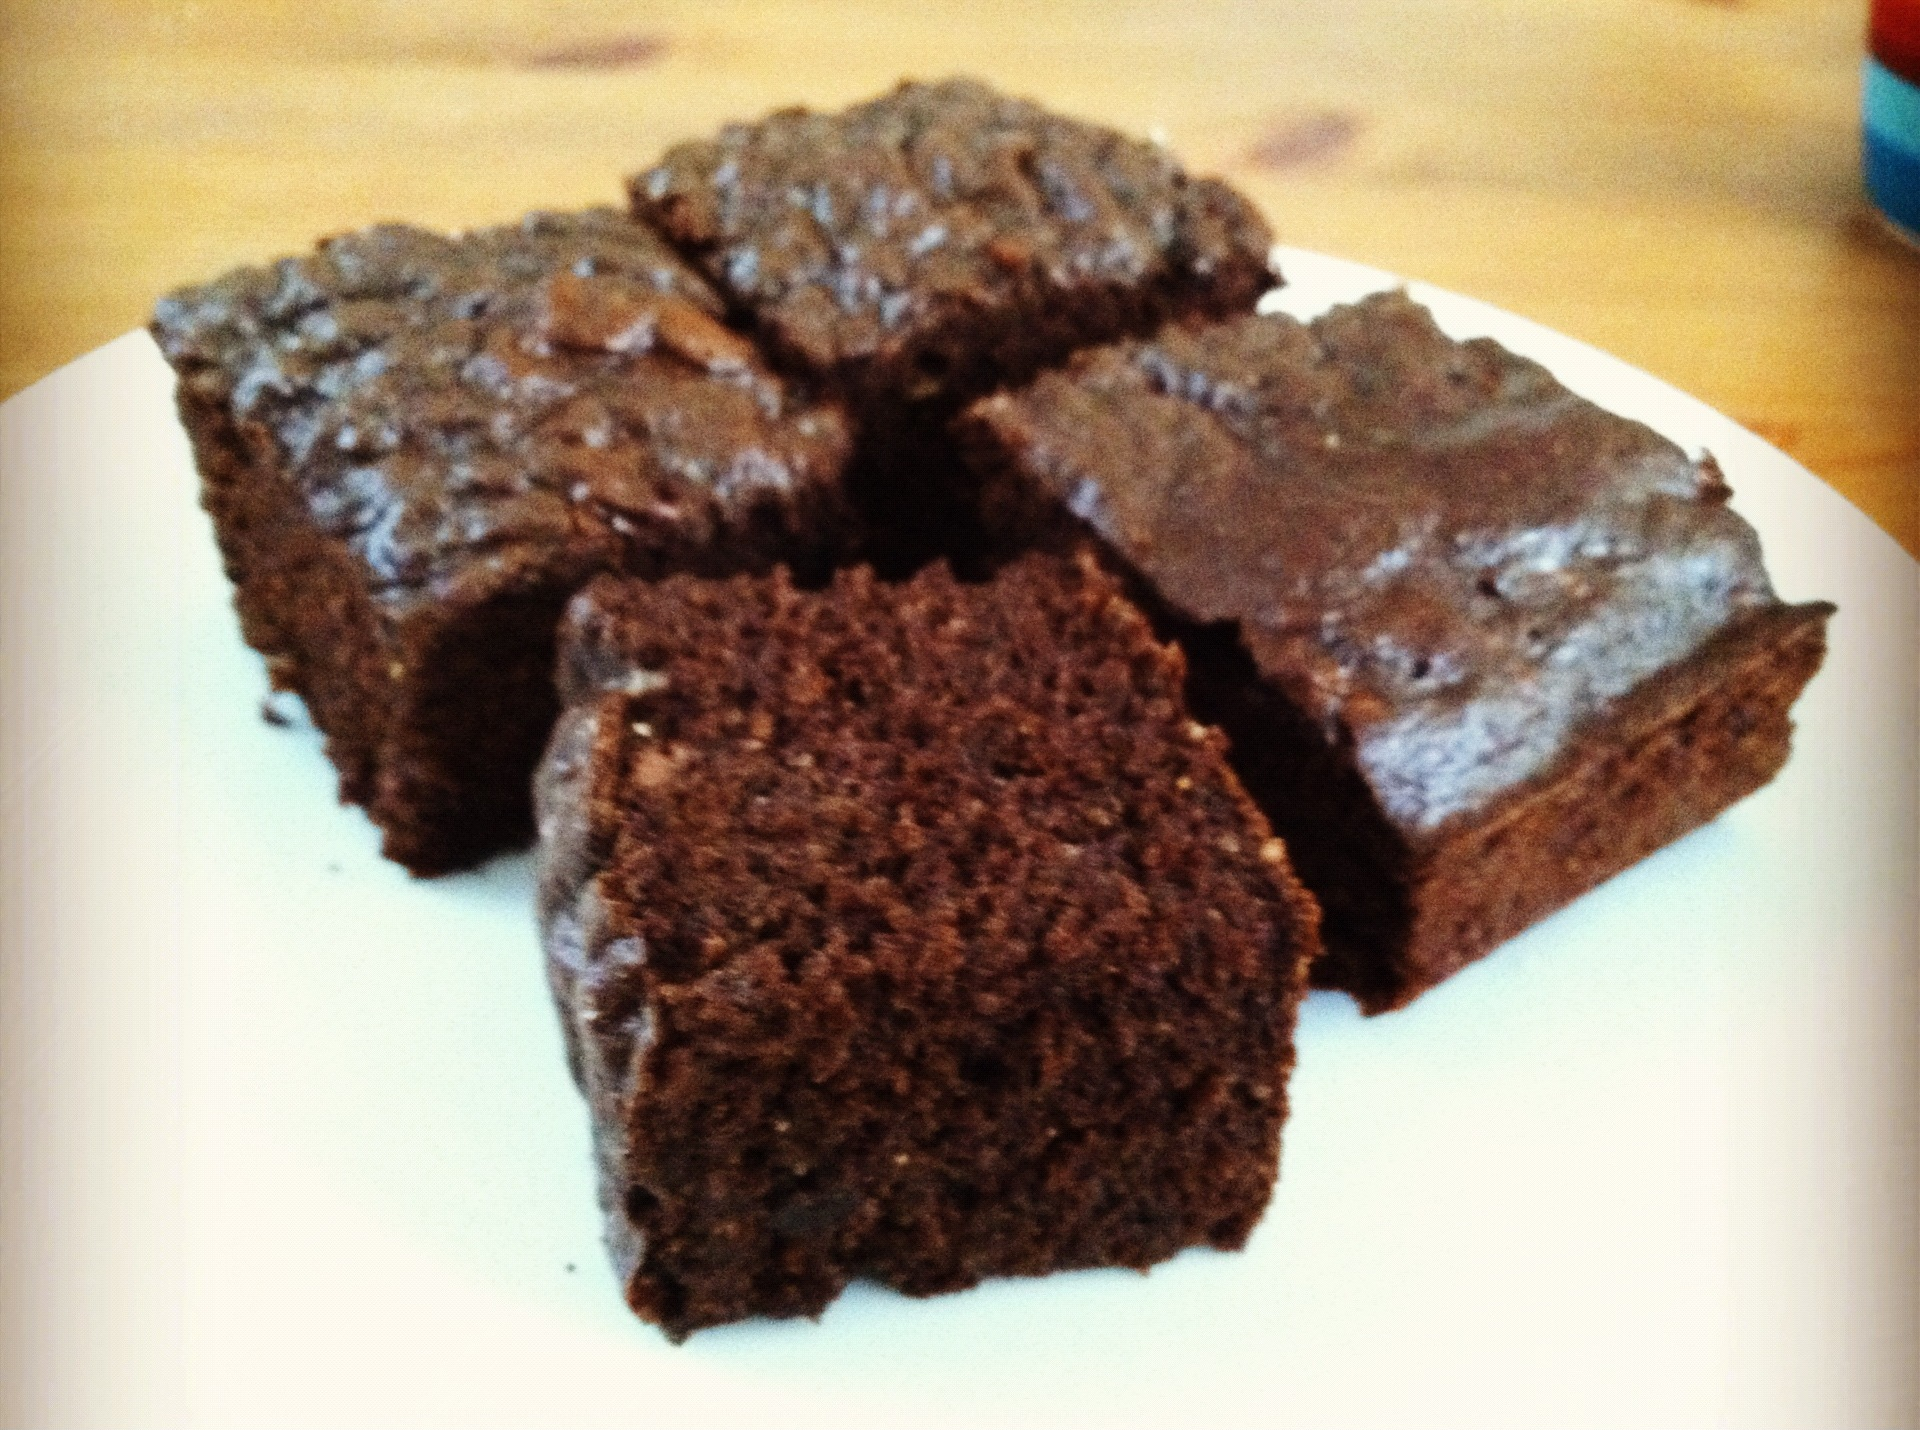 Chocolate brownie recipe | Get Fit Naturally